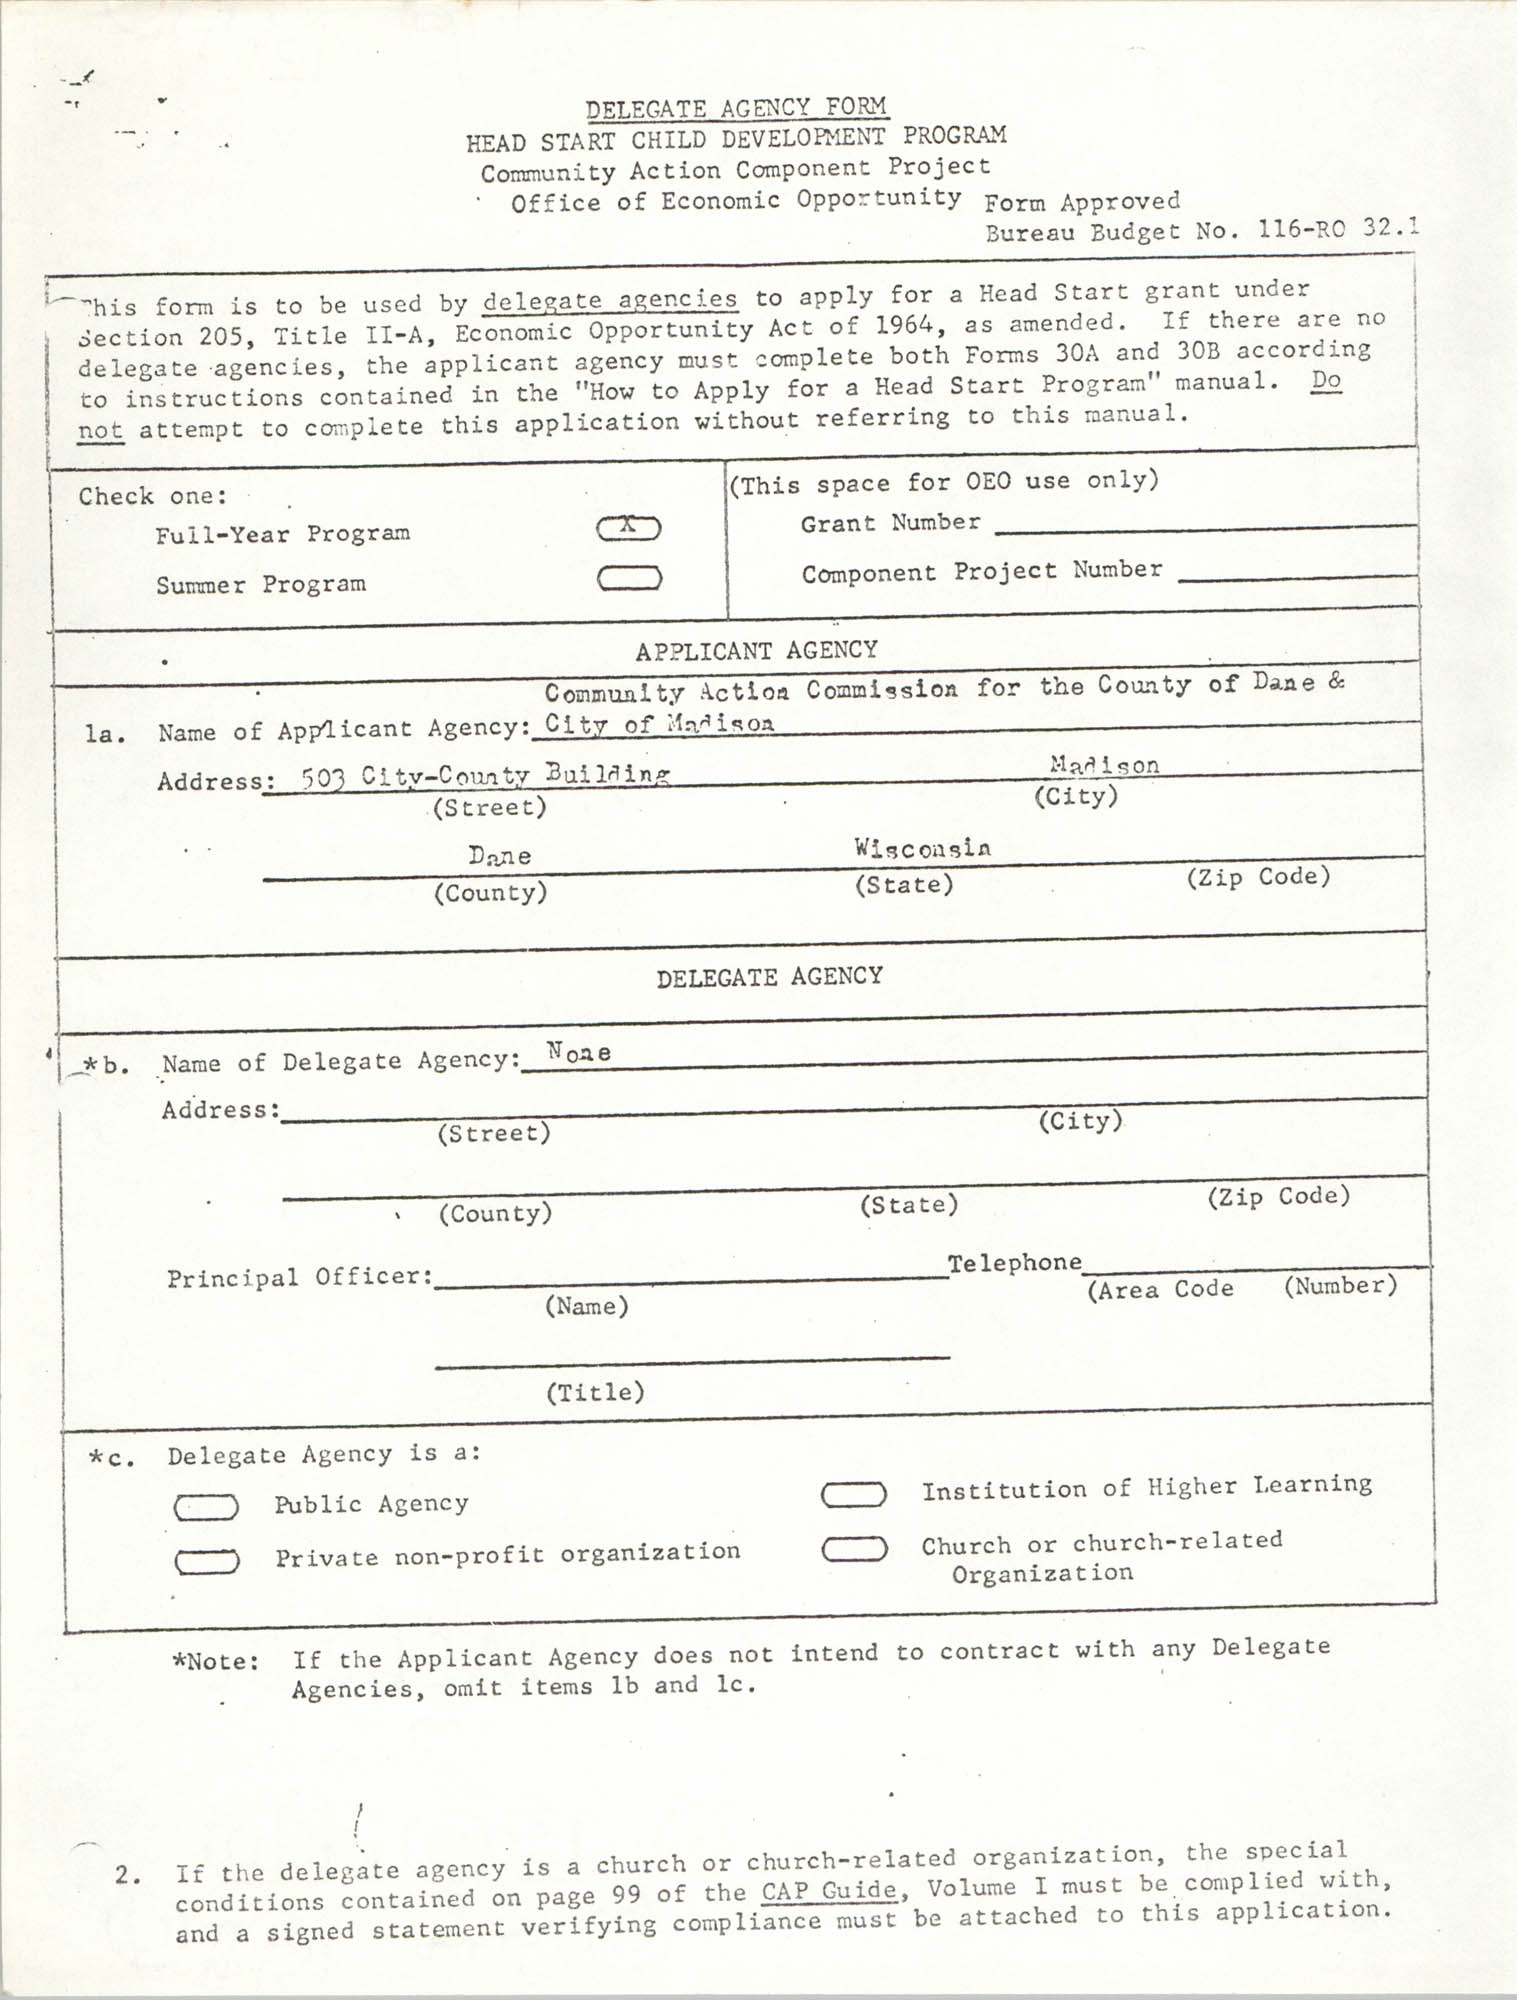 Delegate Agency Form, Page 1